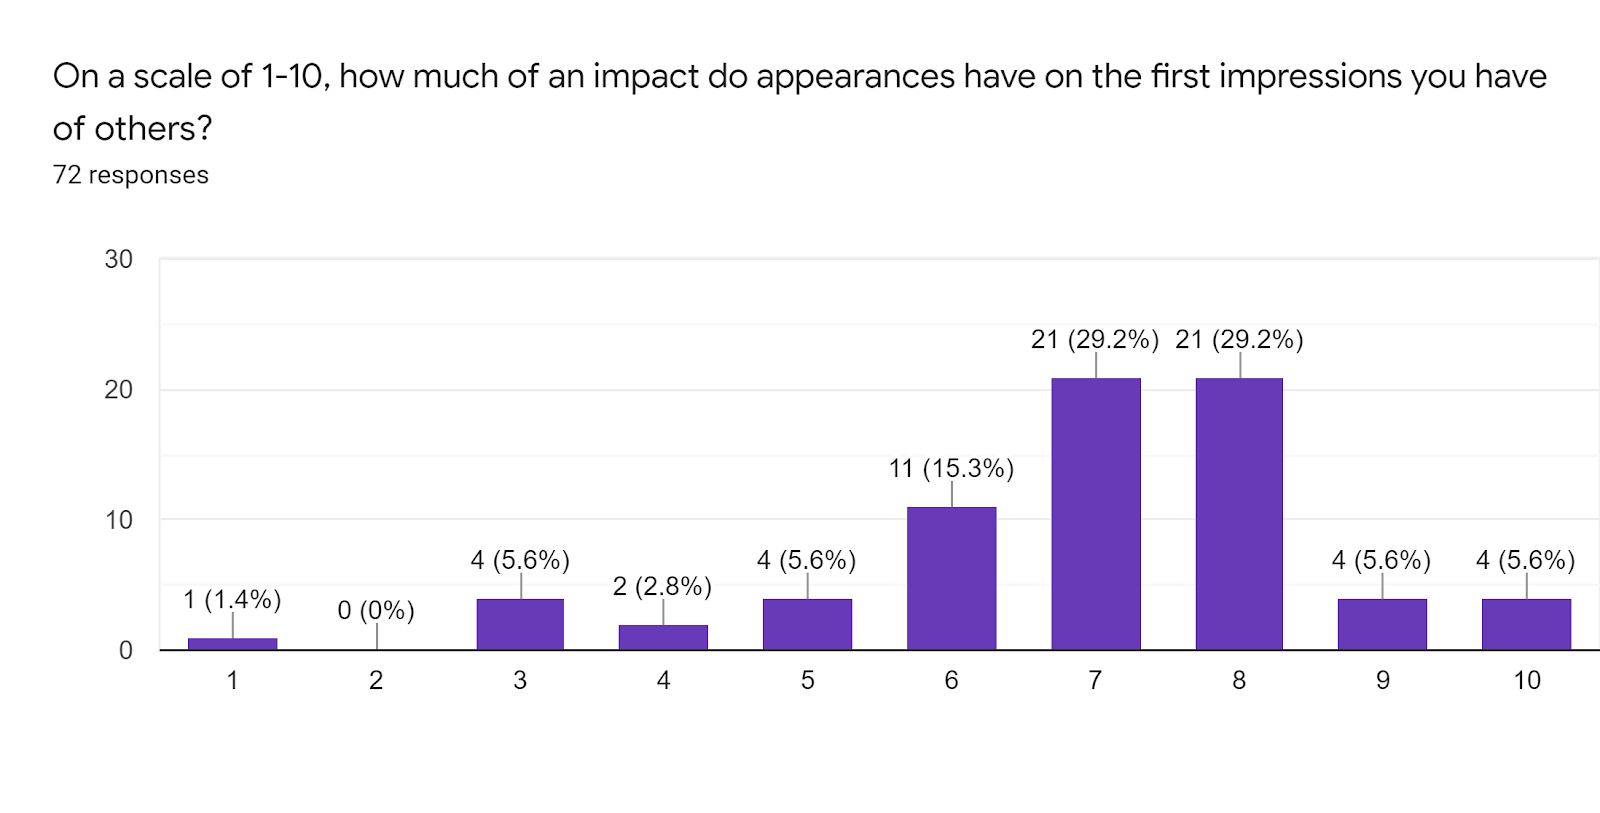 Forms response chart. Question title: On a scale of 1-10, how much of an impact do appearances have on the first impressions you have of others?. Number of responses: 72 responses.